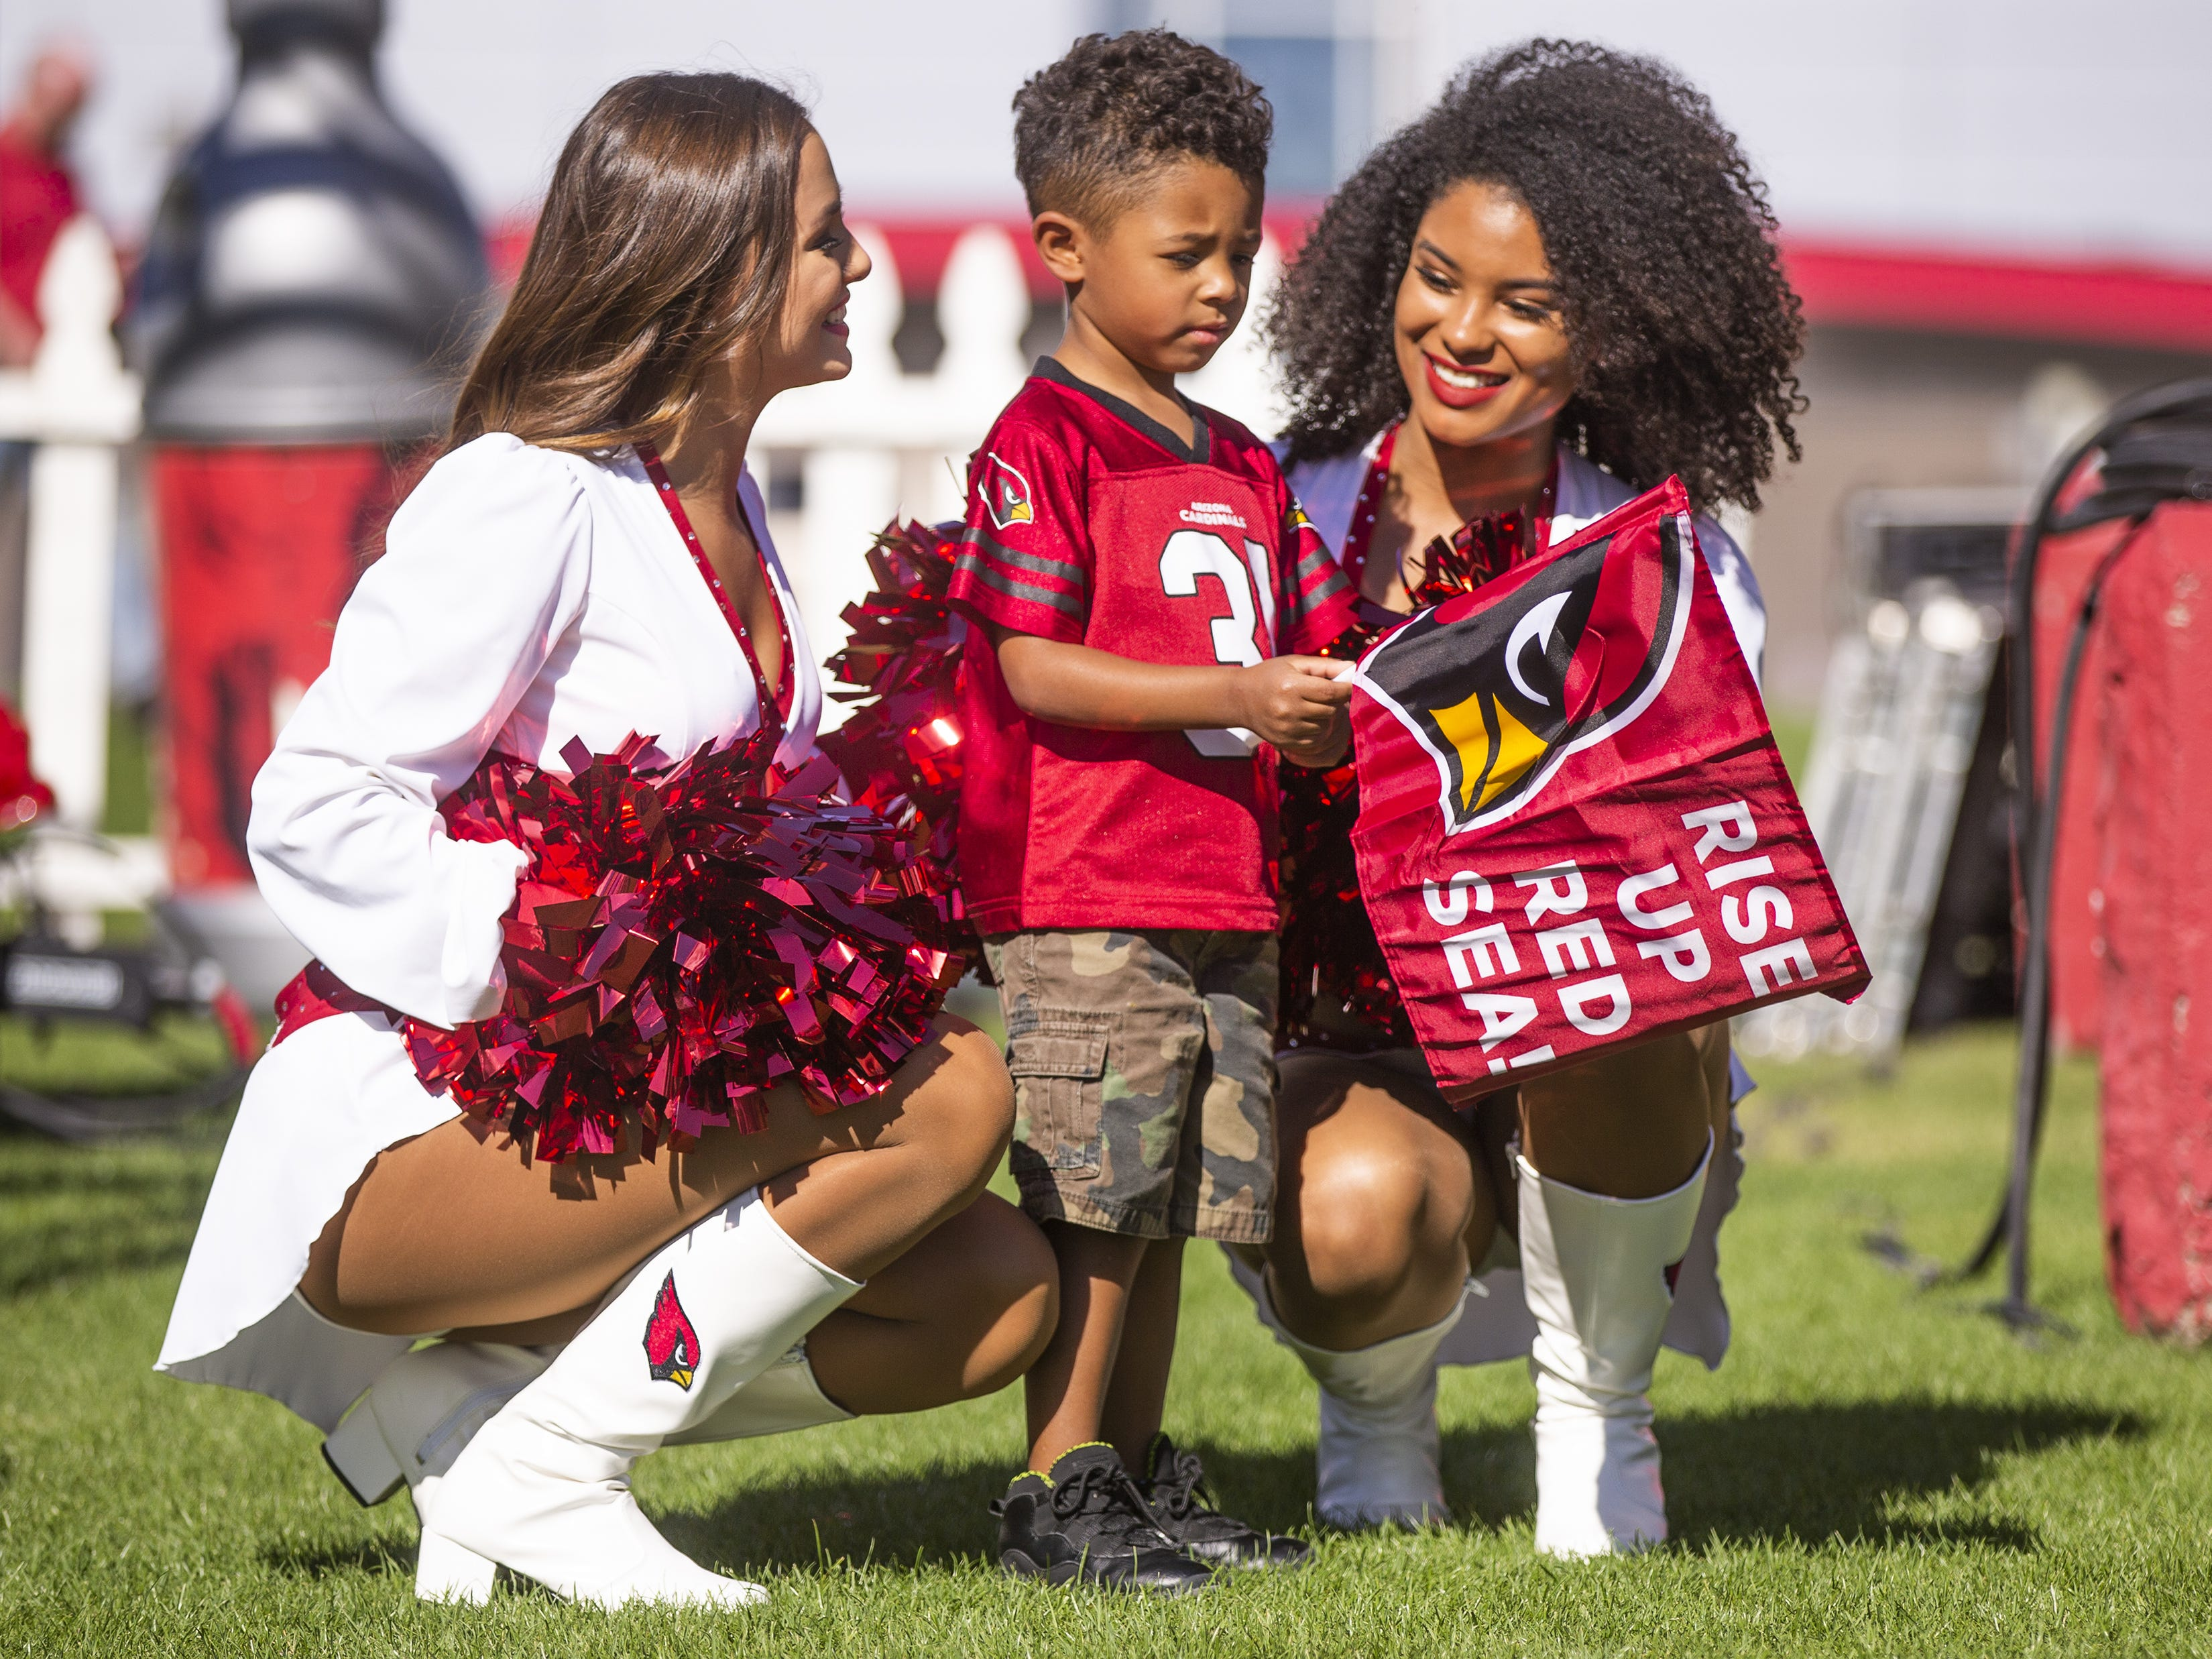 Arizona Cardinals cheerleaders Mandy, left, and Tequasia, right, pose with Isaiah Henry, 3, Peoria, at the NFL Draft party on the Great Lawn outside State Farm Stadium, Thursday, April 25, 2019.